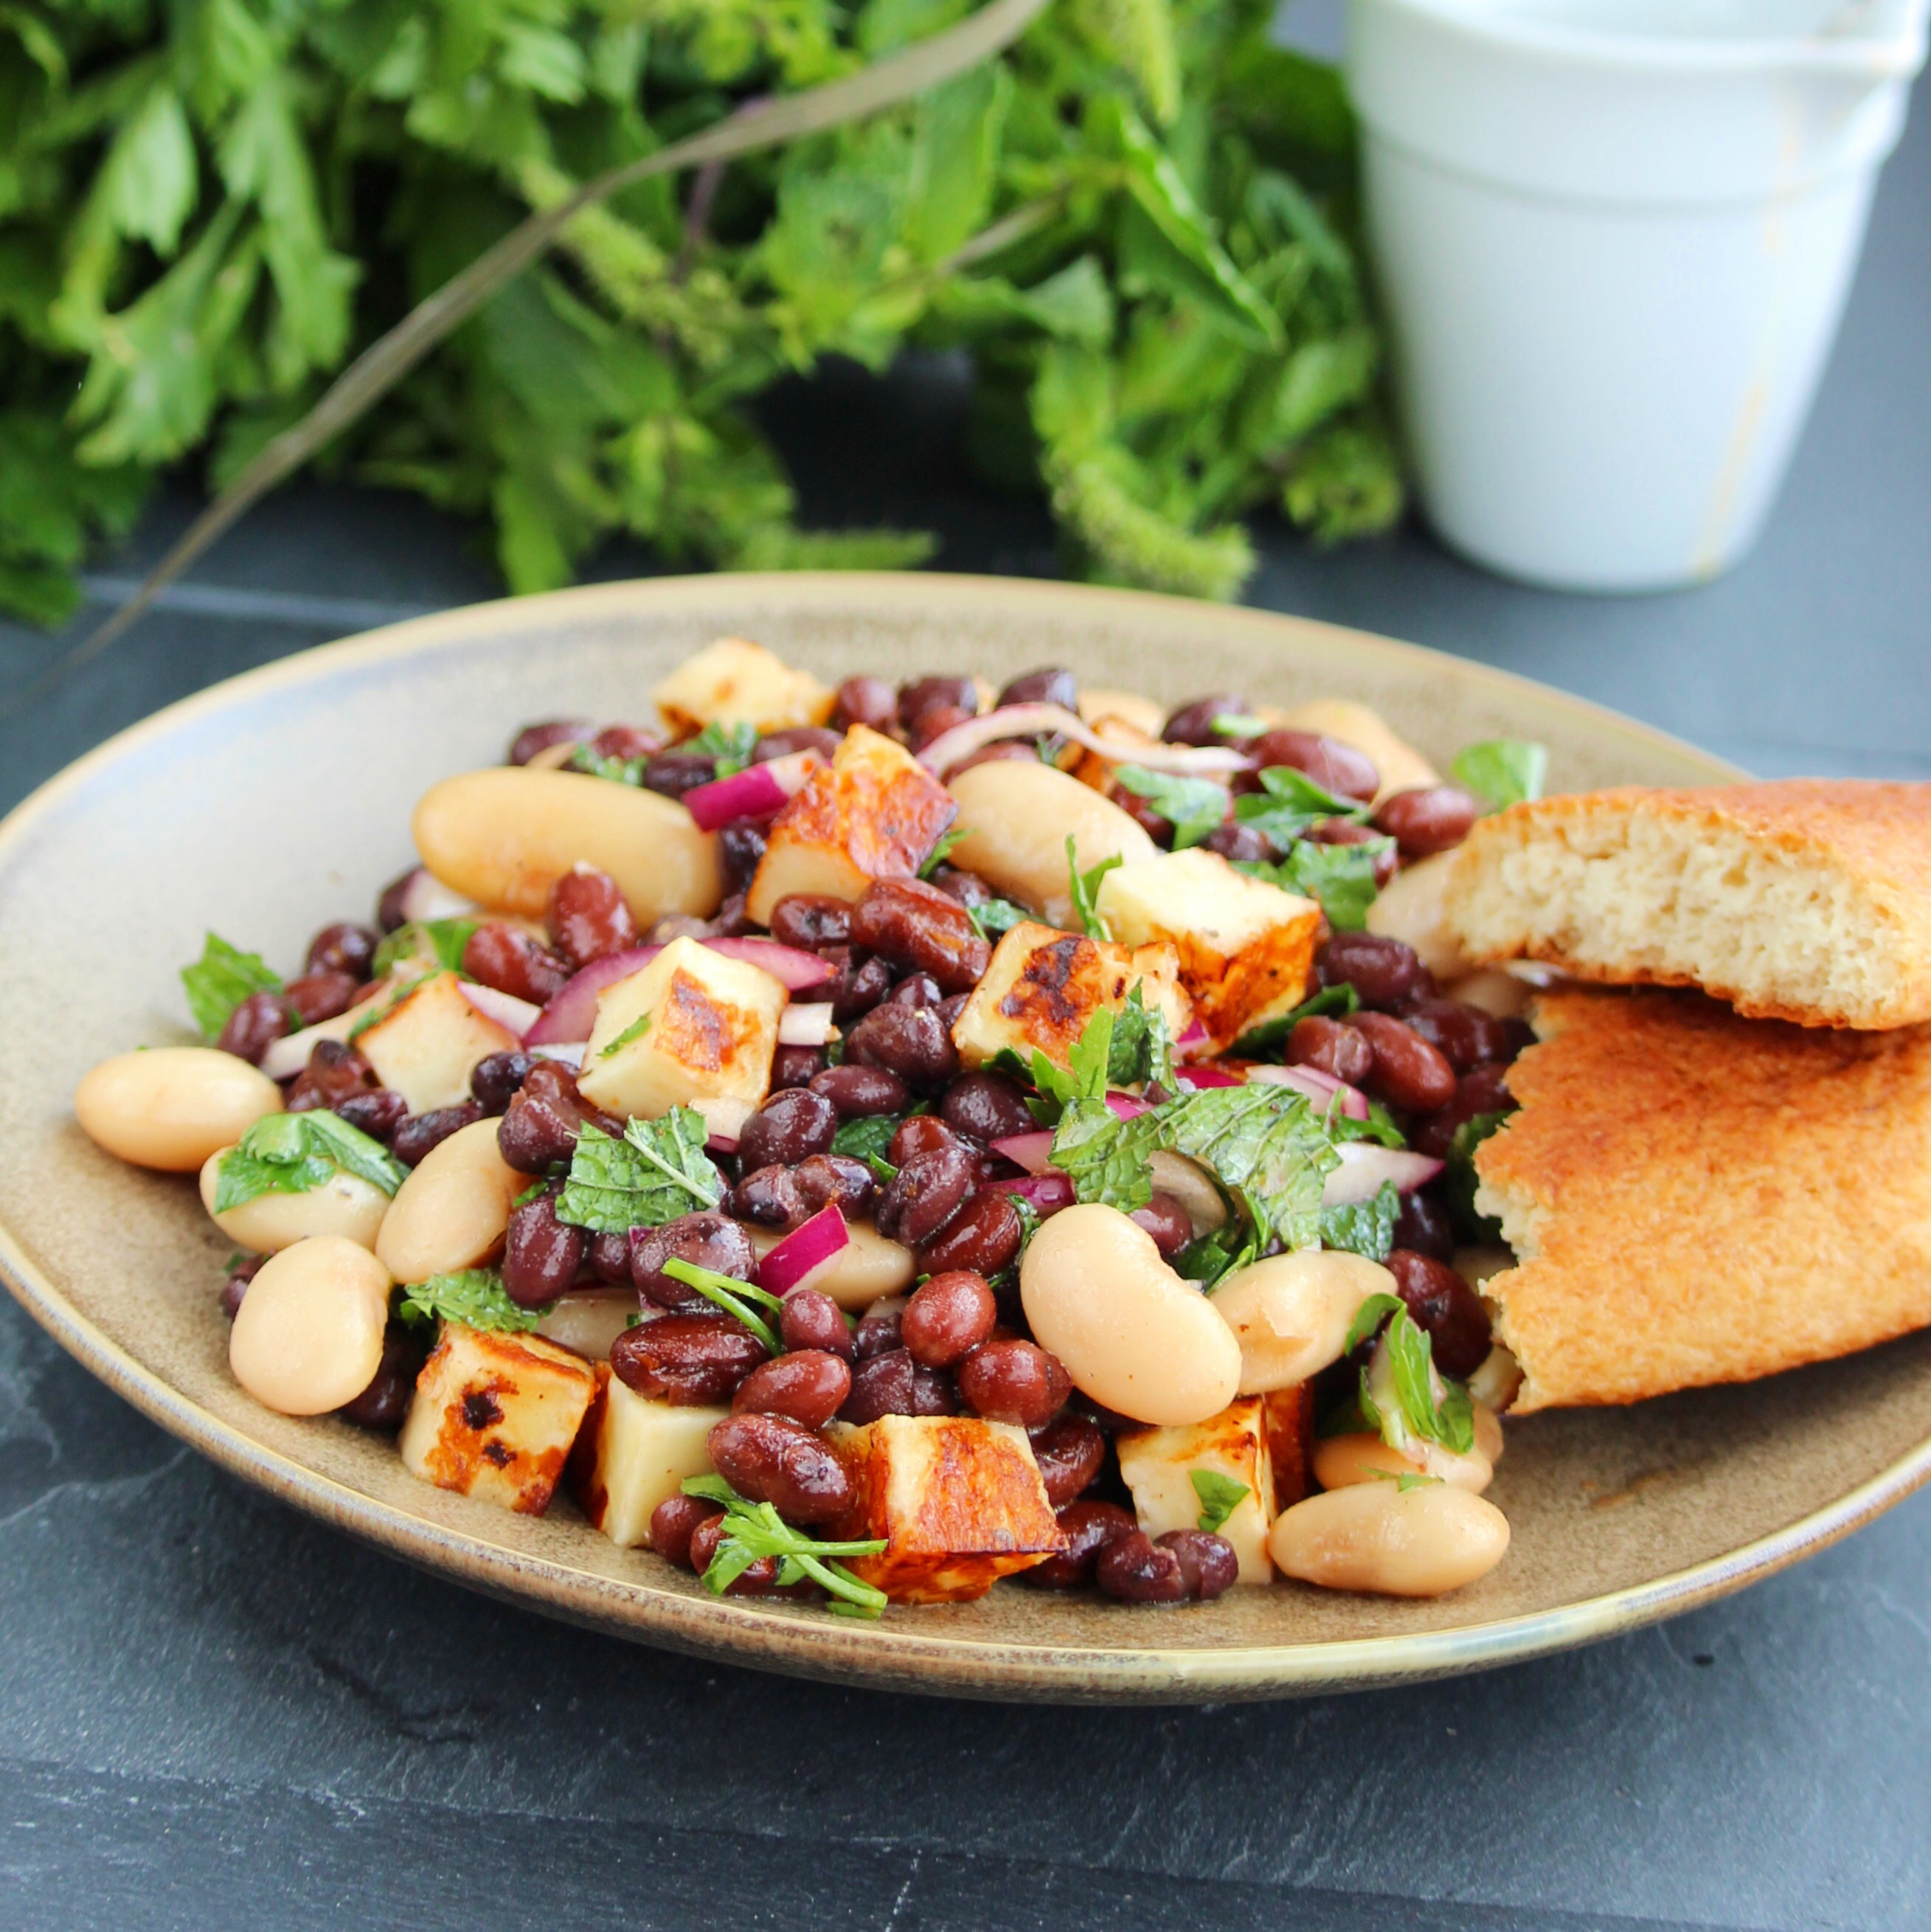 """Pan-fried halloumi, 3 types of beans, red onion, fresh coriander, and mint are tossed with homemade vinaigrette (featuring harissa sauce) for a unique salad your taste buds will love,"" says Buckwheat Queen."